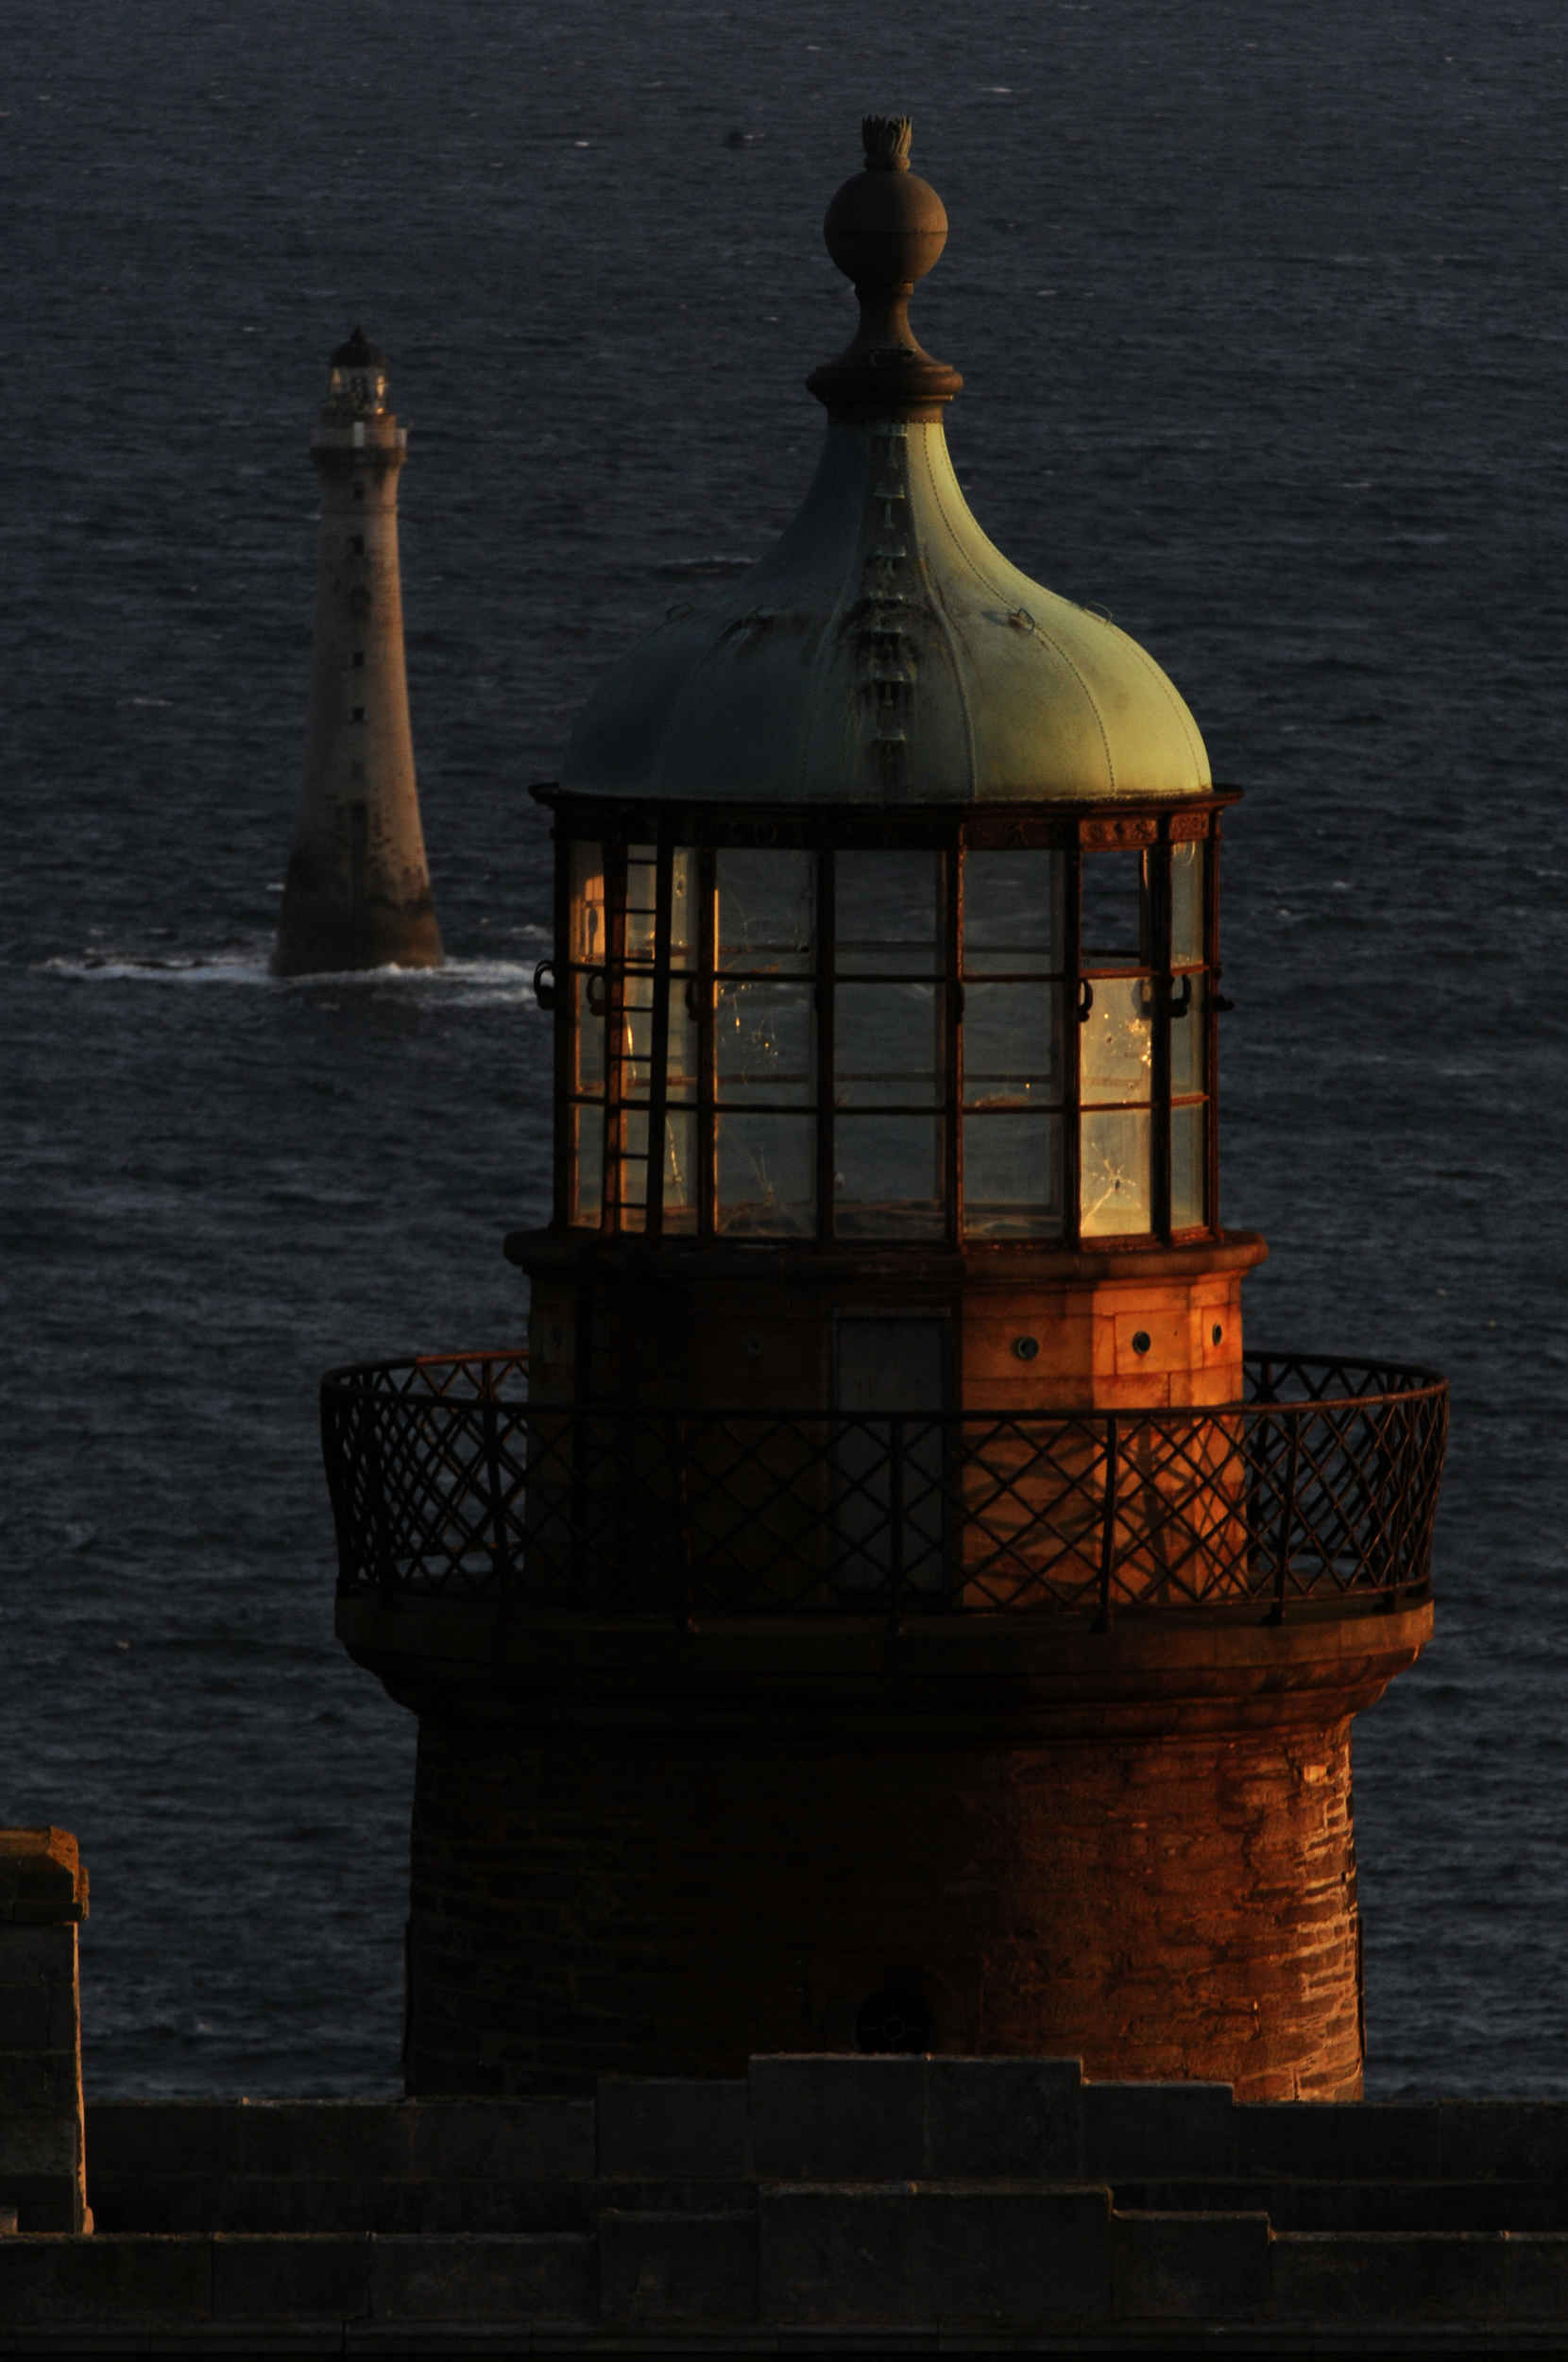 The Stevenson lighthouses on the Calf of Man, pointing towards Chickens Rock